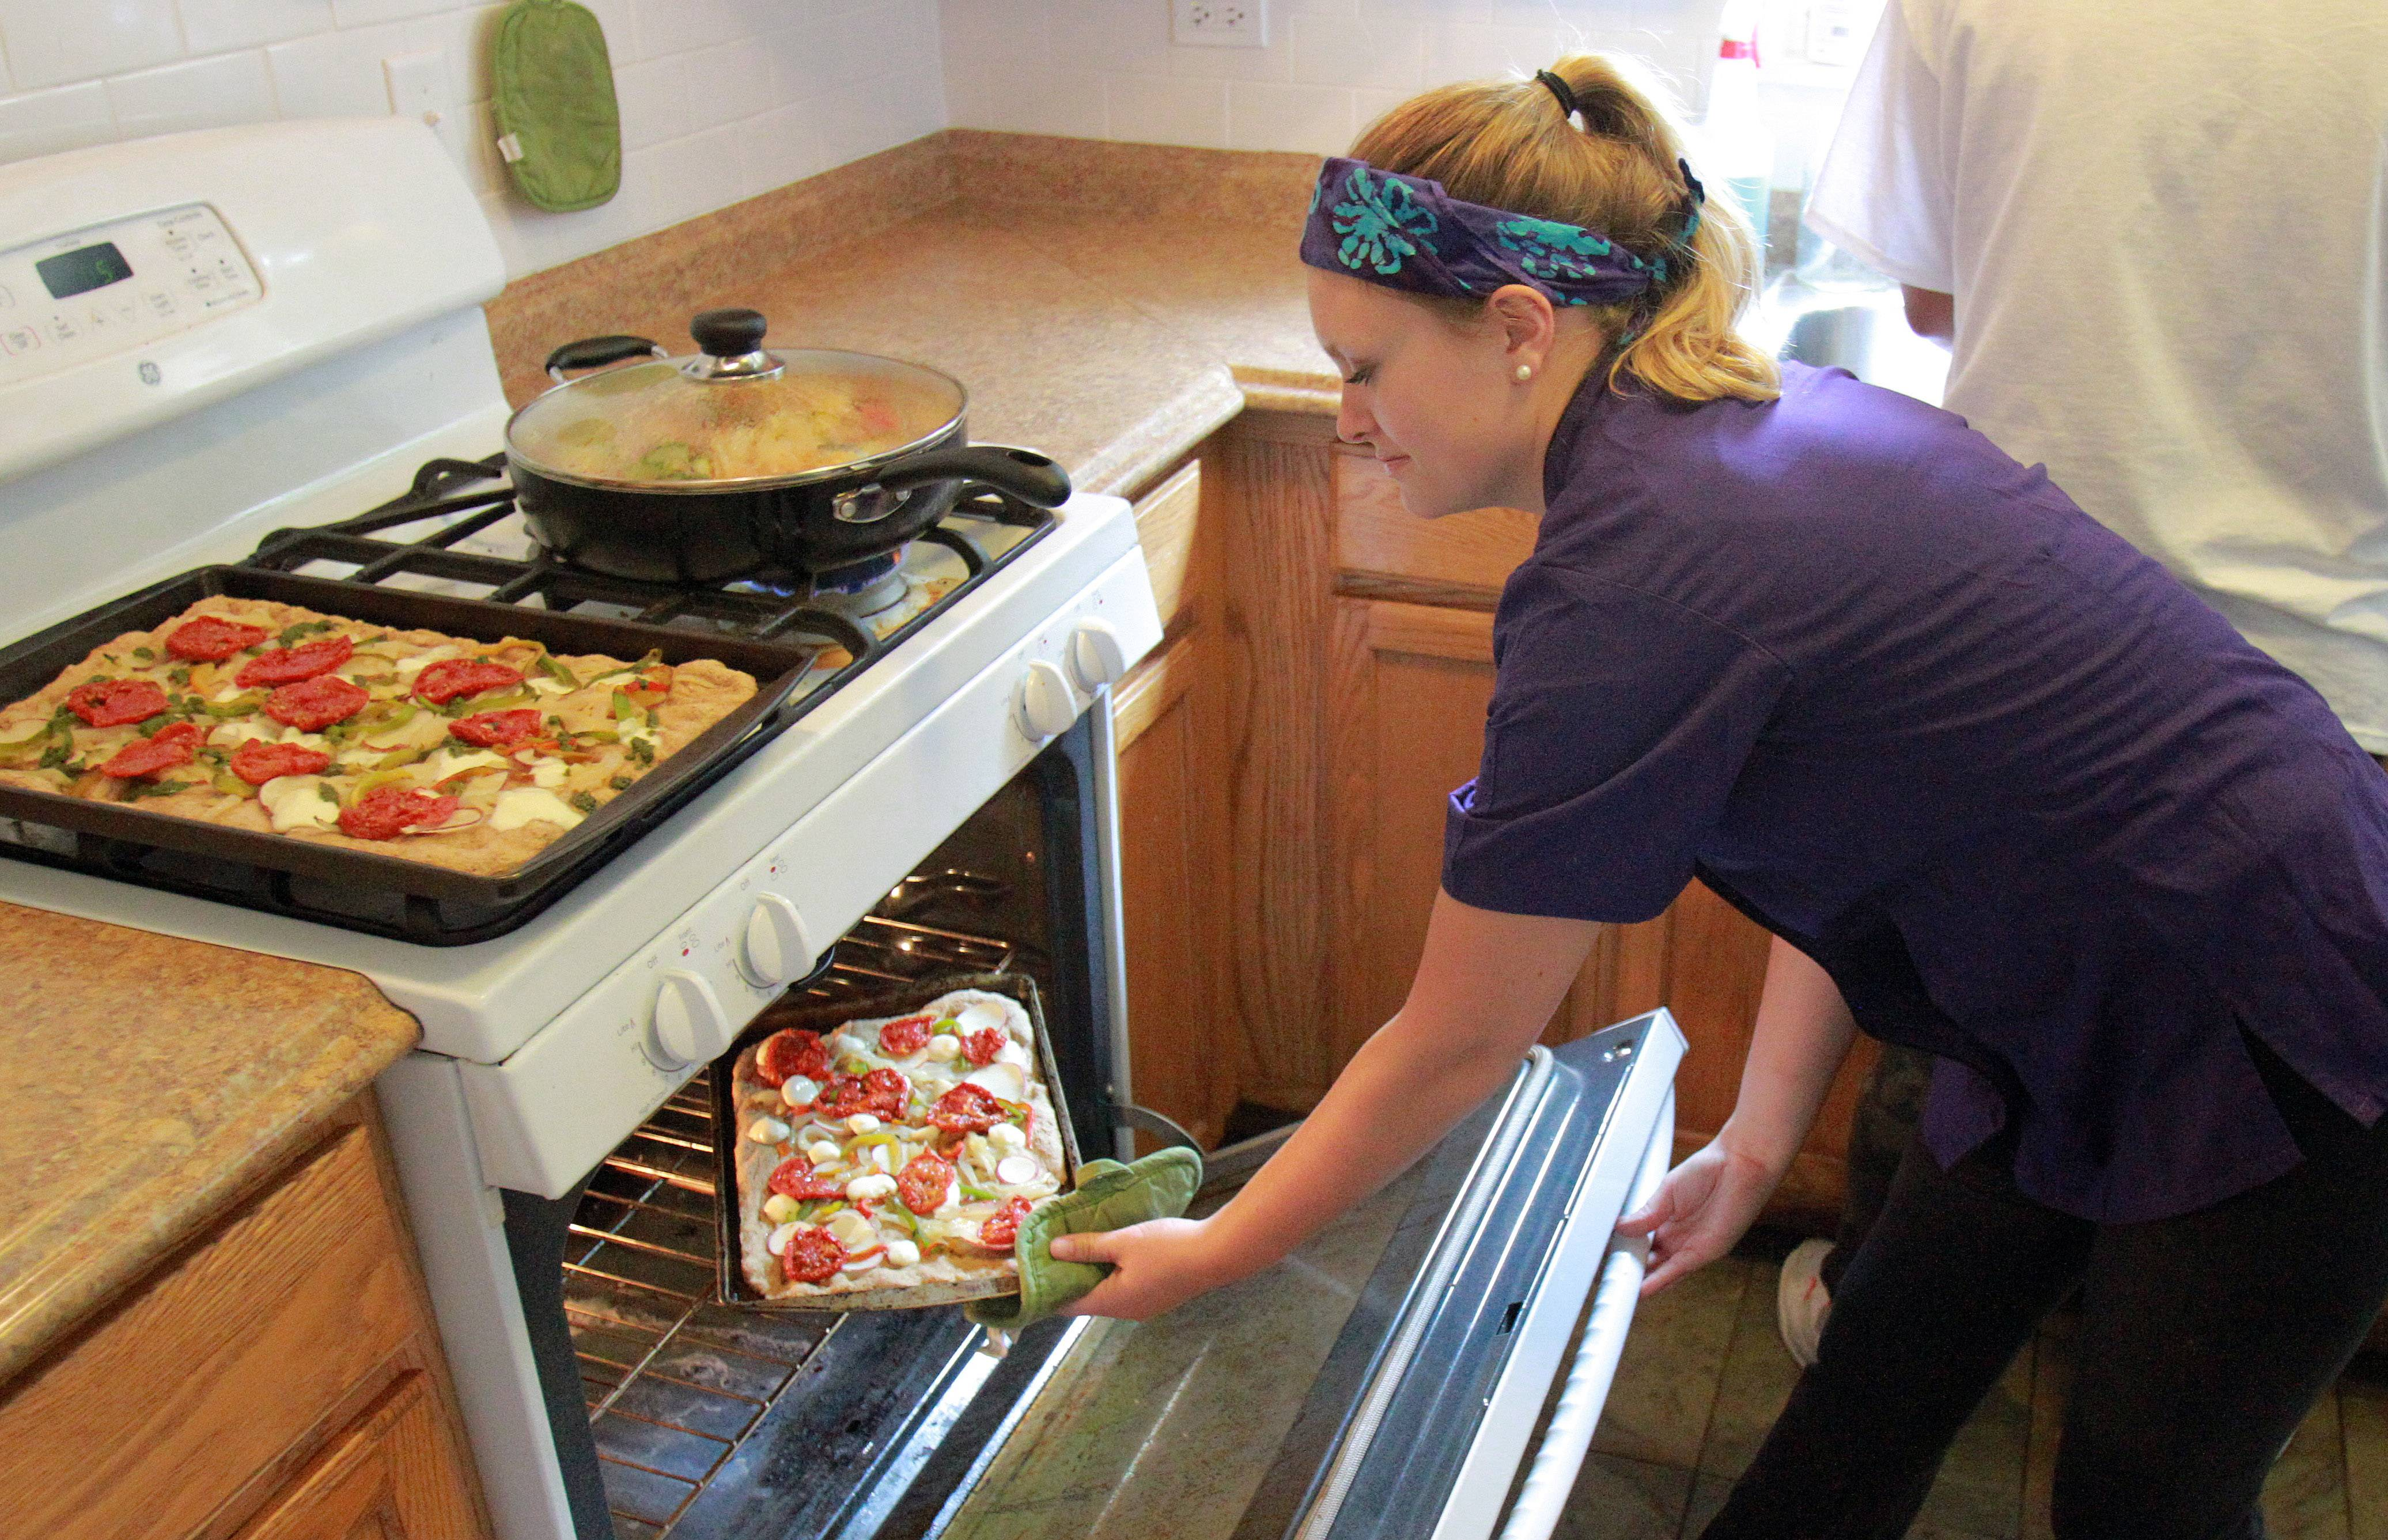 MacKenzie Le Beau, 21, an intern at Prairie Farm Corps at Prairie Crossing in Grayslake, puts a flat bread pizza into the oven. The pizza is topped with ingredients from the local farm.